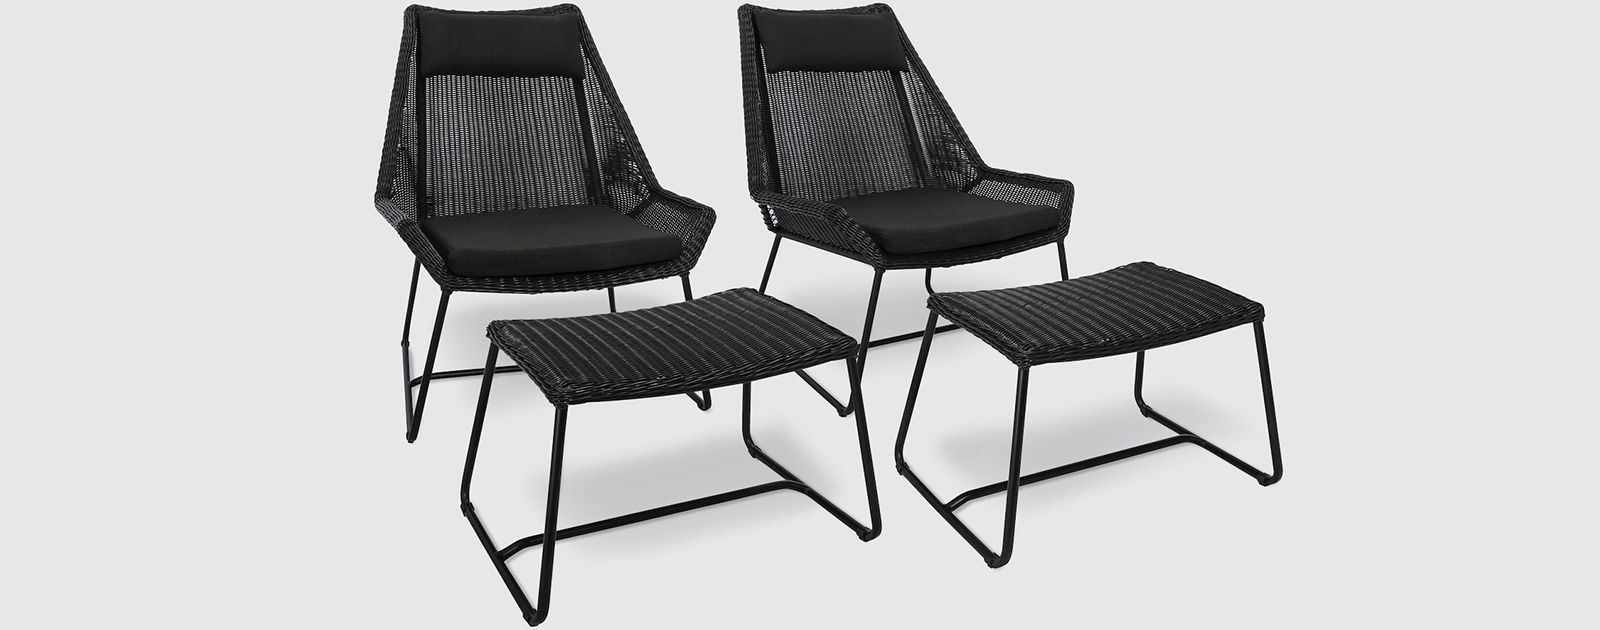 Patio Furniture Patio Chairs Tables Nz Design Concepts Terras